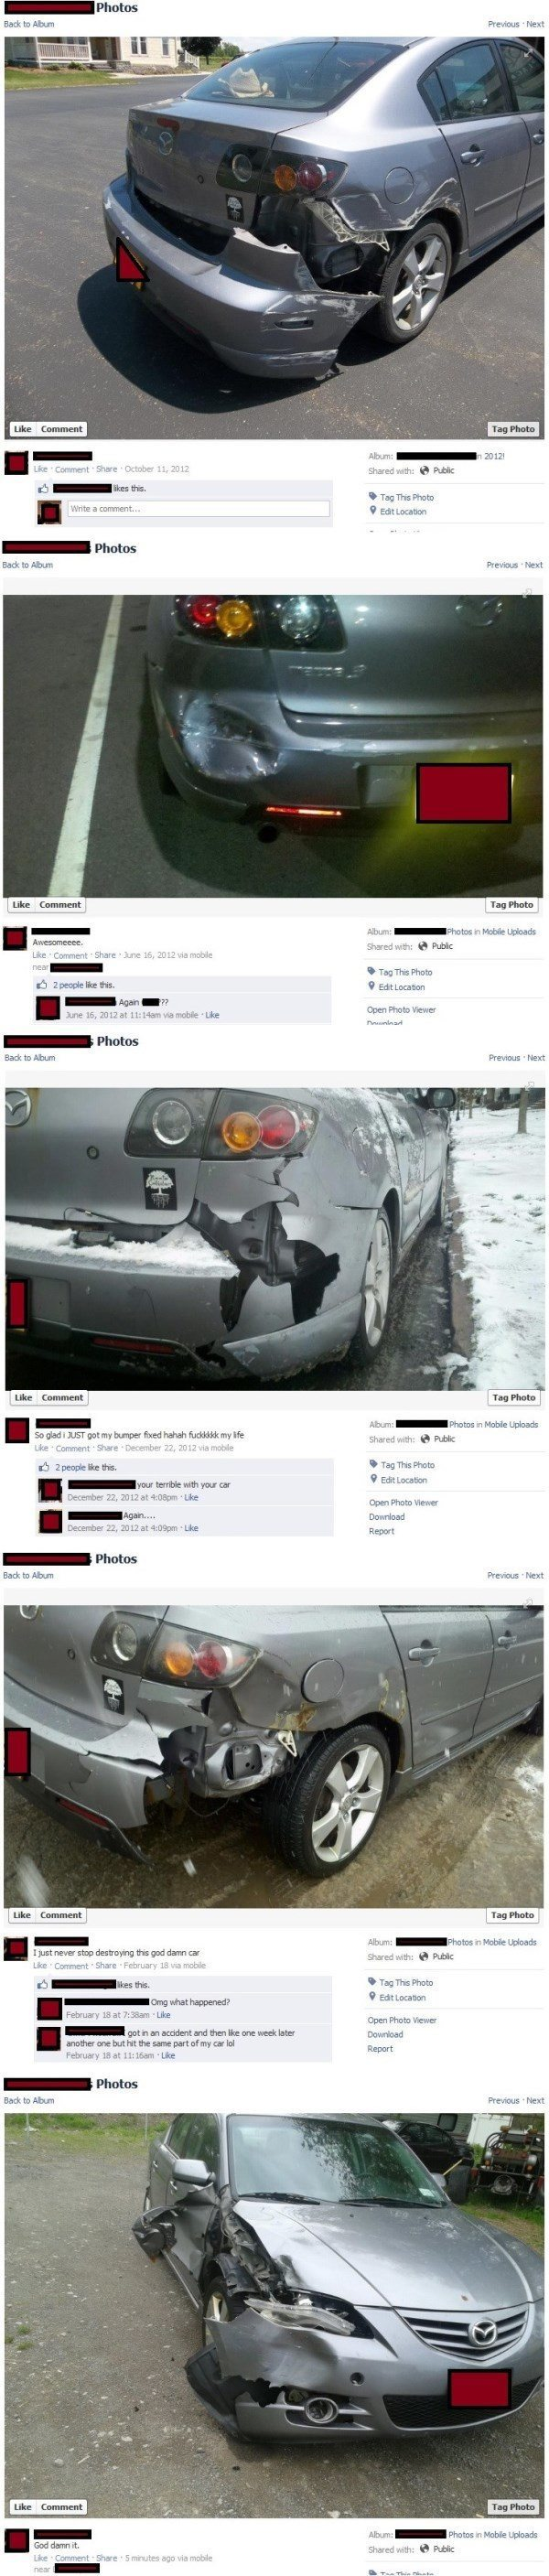 Facebook Pictures Bad Driver